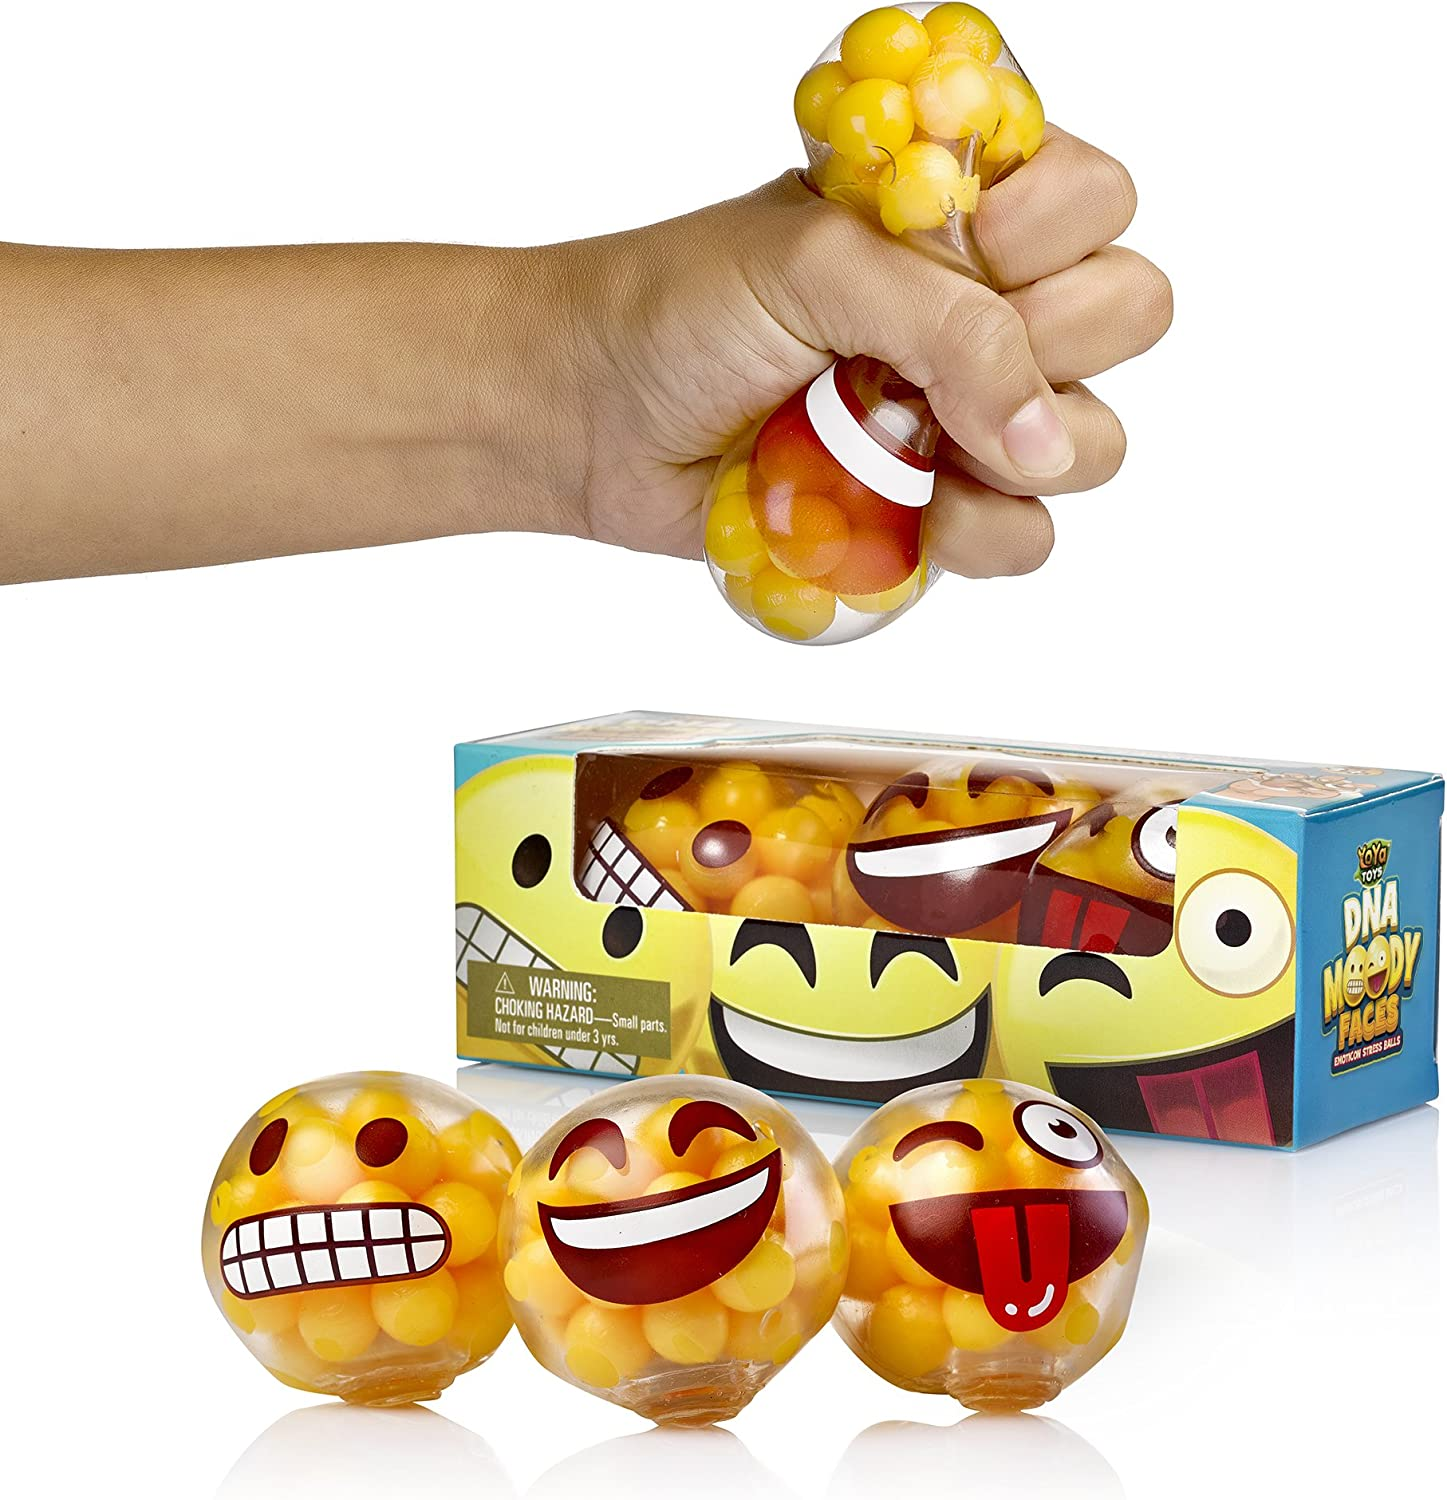 YoYa Toys DNA Emoji Stress Balls Squeezing Stress Relief and Fidget Toy - 3 Different Popular Smiley Face - Risk-Free Sensory Toys for Autism, ADHD, Bad Habits and More - Pack of 3